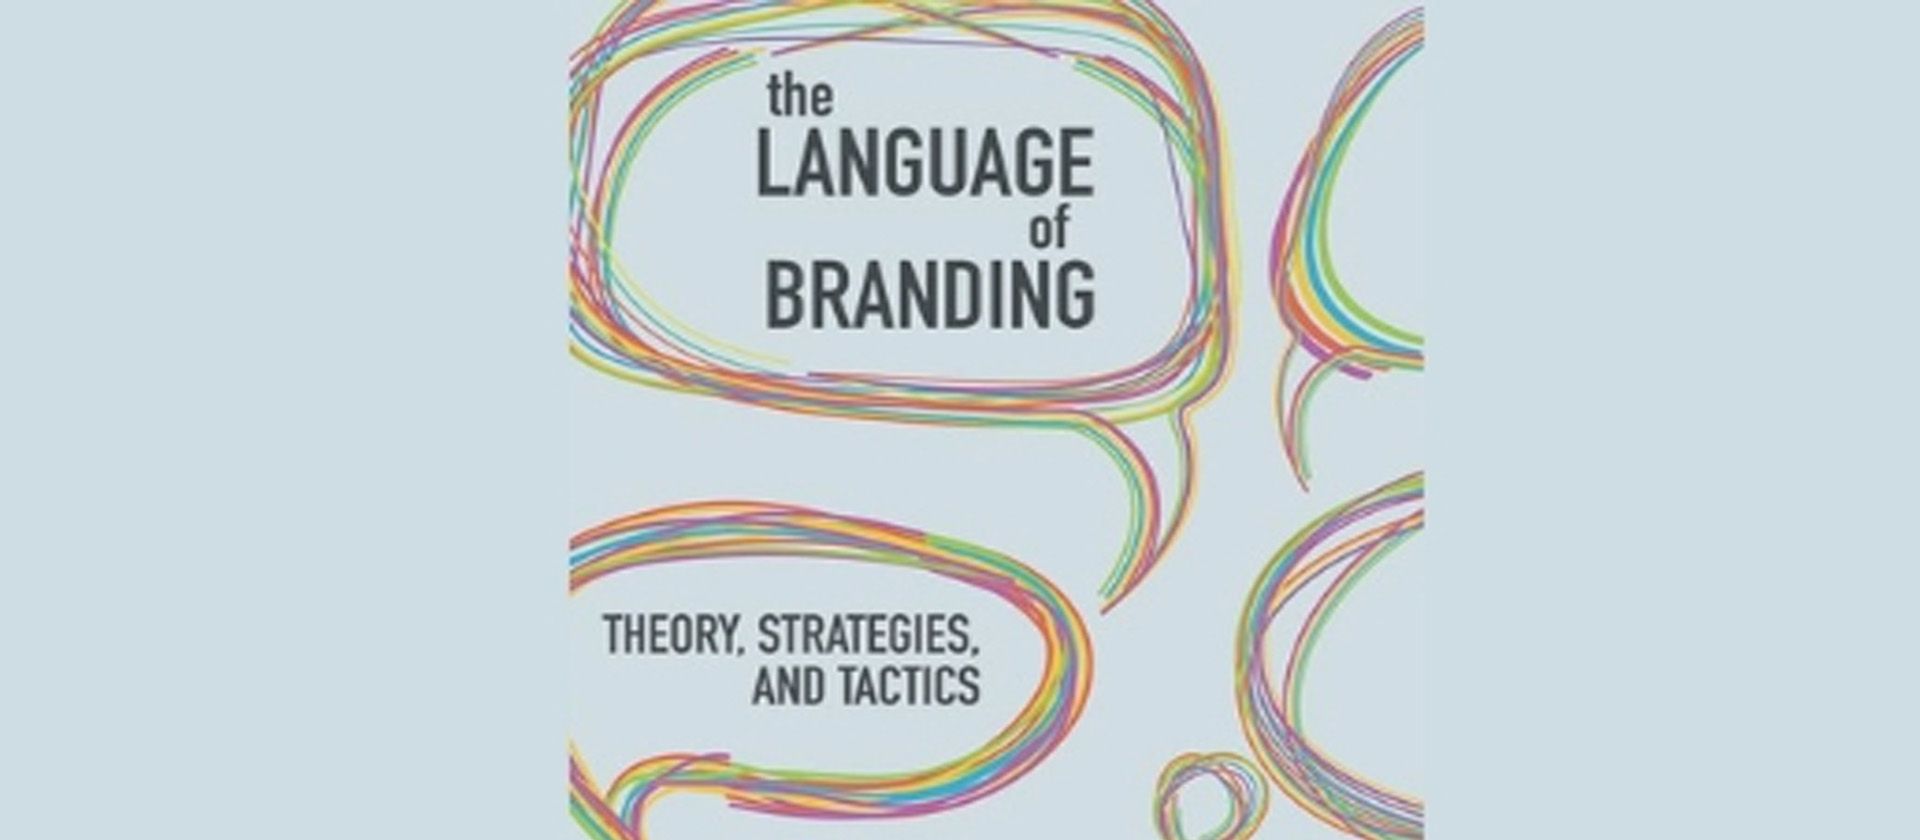 The Language of Branding Coverbook